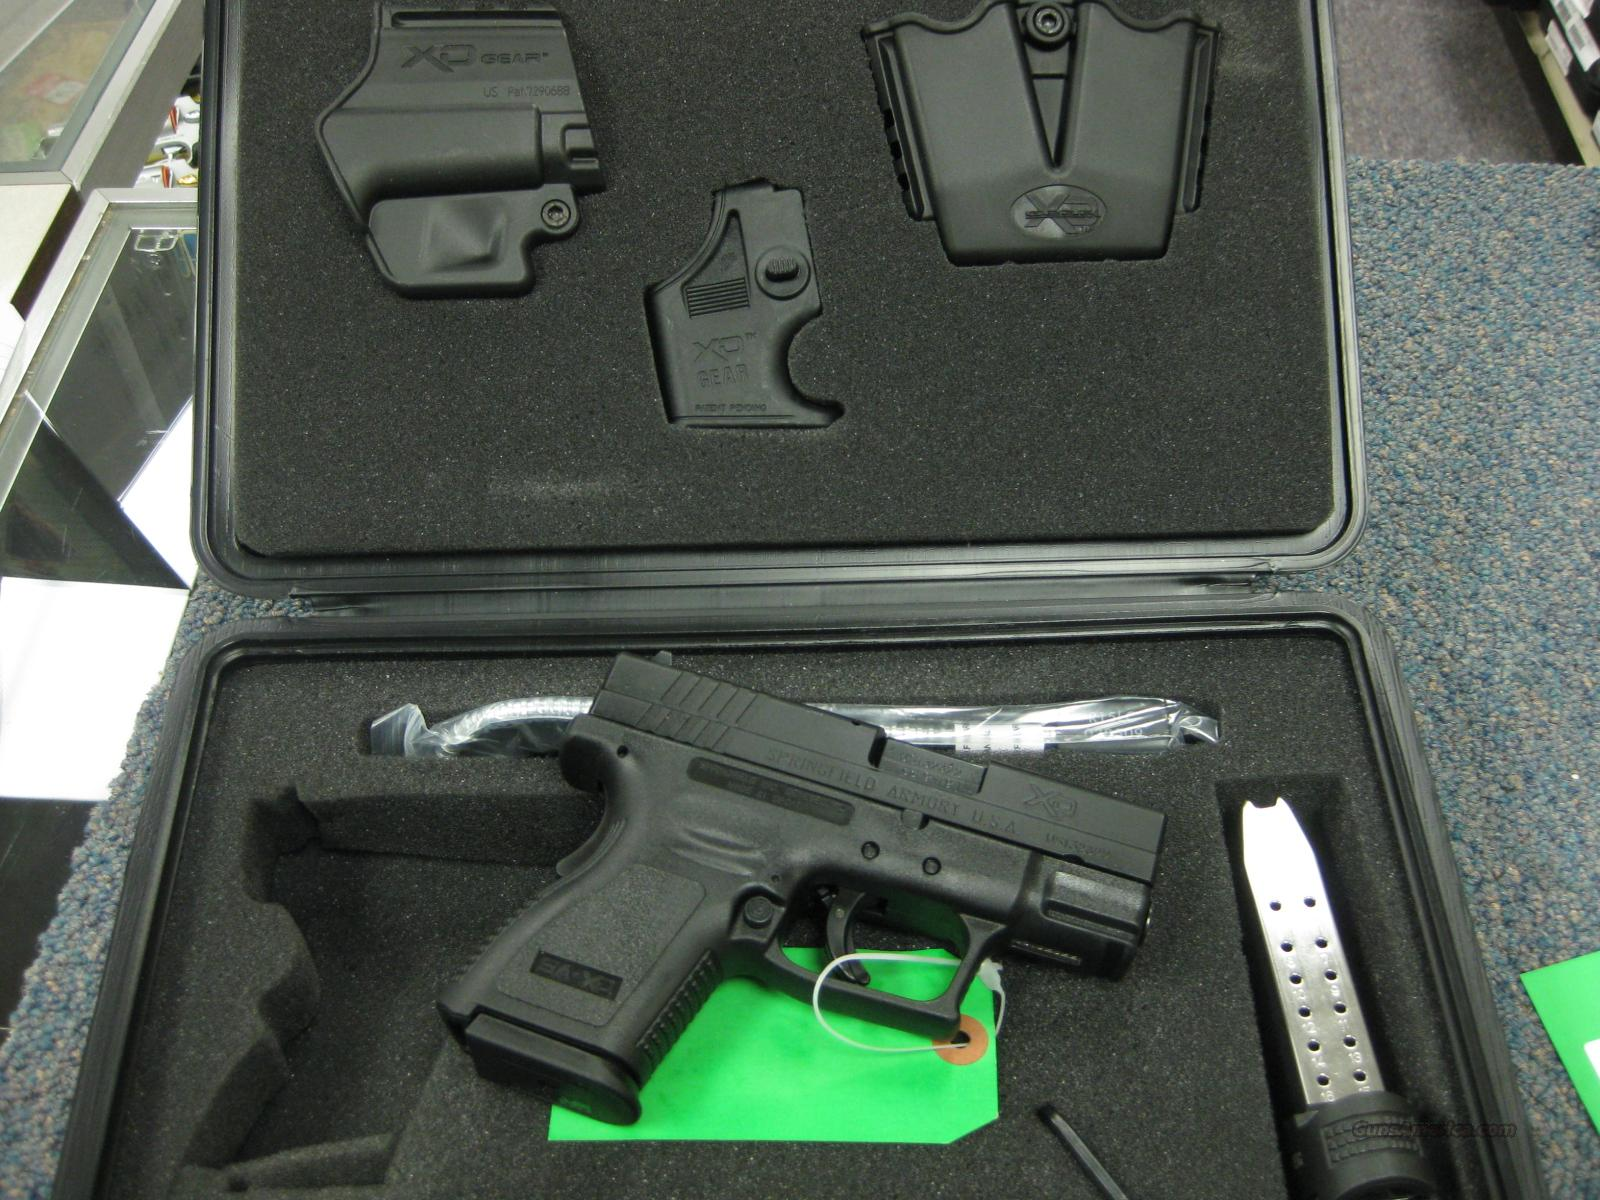 SPRINGFIELD XD SUB-COMPACT 9MM MINT W/BOX & ACCESSORIES  Guns > Pistols > Springfield Armory Pistols > XD (eXtreme Duty)